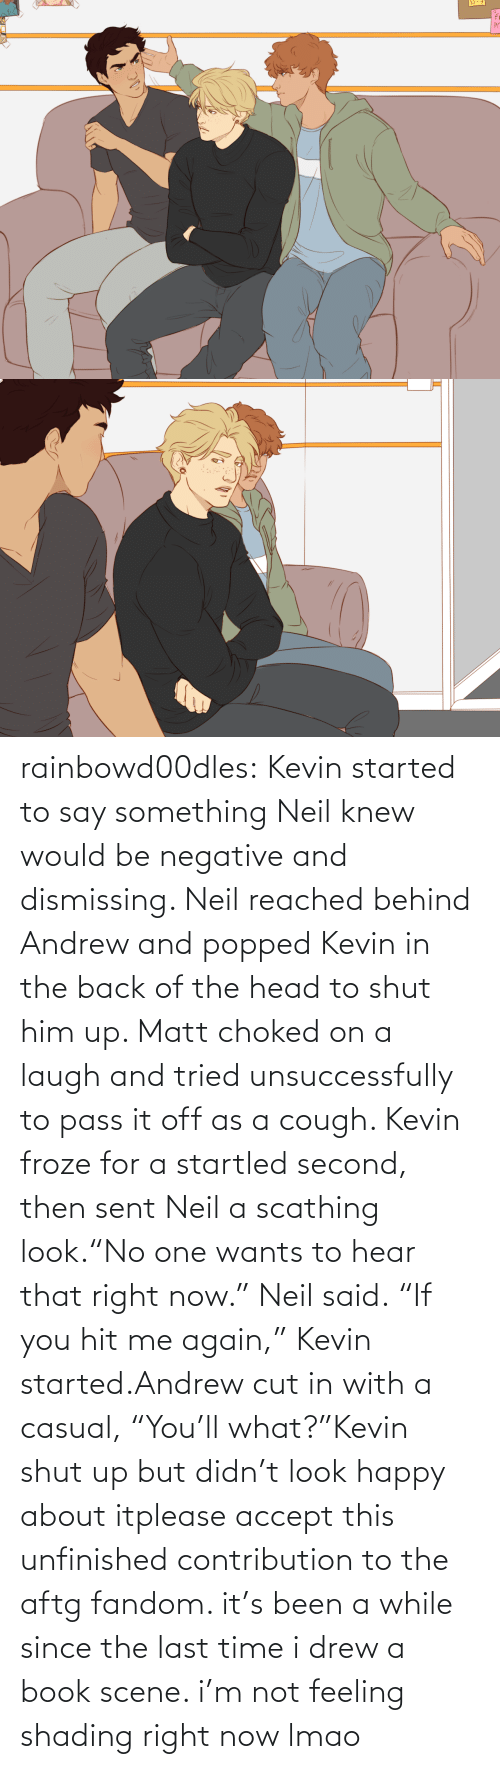 "Cut: rainbowd00dles:  Kevin started to say something Neil knew would be negative and dismissing. Neil reached behind Andrew and popped Kevin in the back of the head to shut him up. Matt choked on a laugh and tried unsuccessfully to pass it off as a cough. Kevin froze for a startled second, then sent Neil a scathing look.""No one wants to hear that right now."" Neil said. ""If you hit me again,"" Kevin started.Andrew cut in with a casual, ""You'll what?""Kevin shut up but didn't look happy about itplease accept this unfinished contribution to the aftg fandom. it's been a while since the last time i drew a book scene. i'm not feeling shading right now lmao"